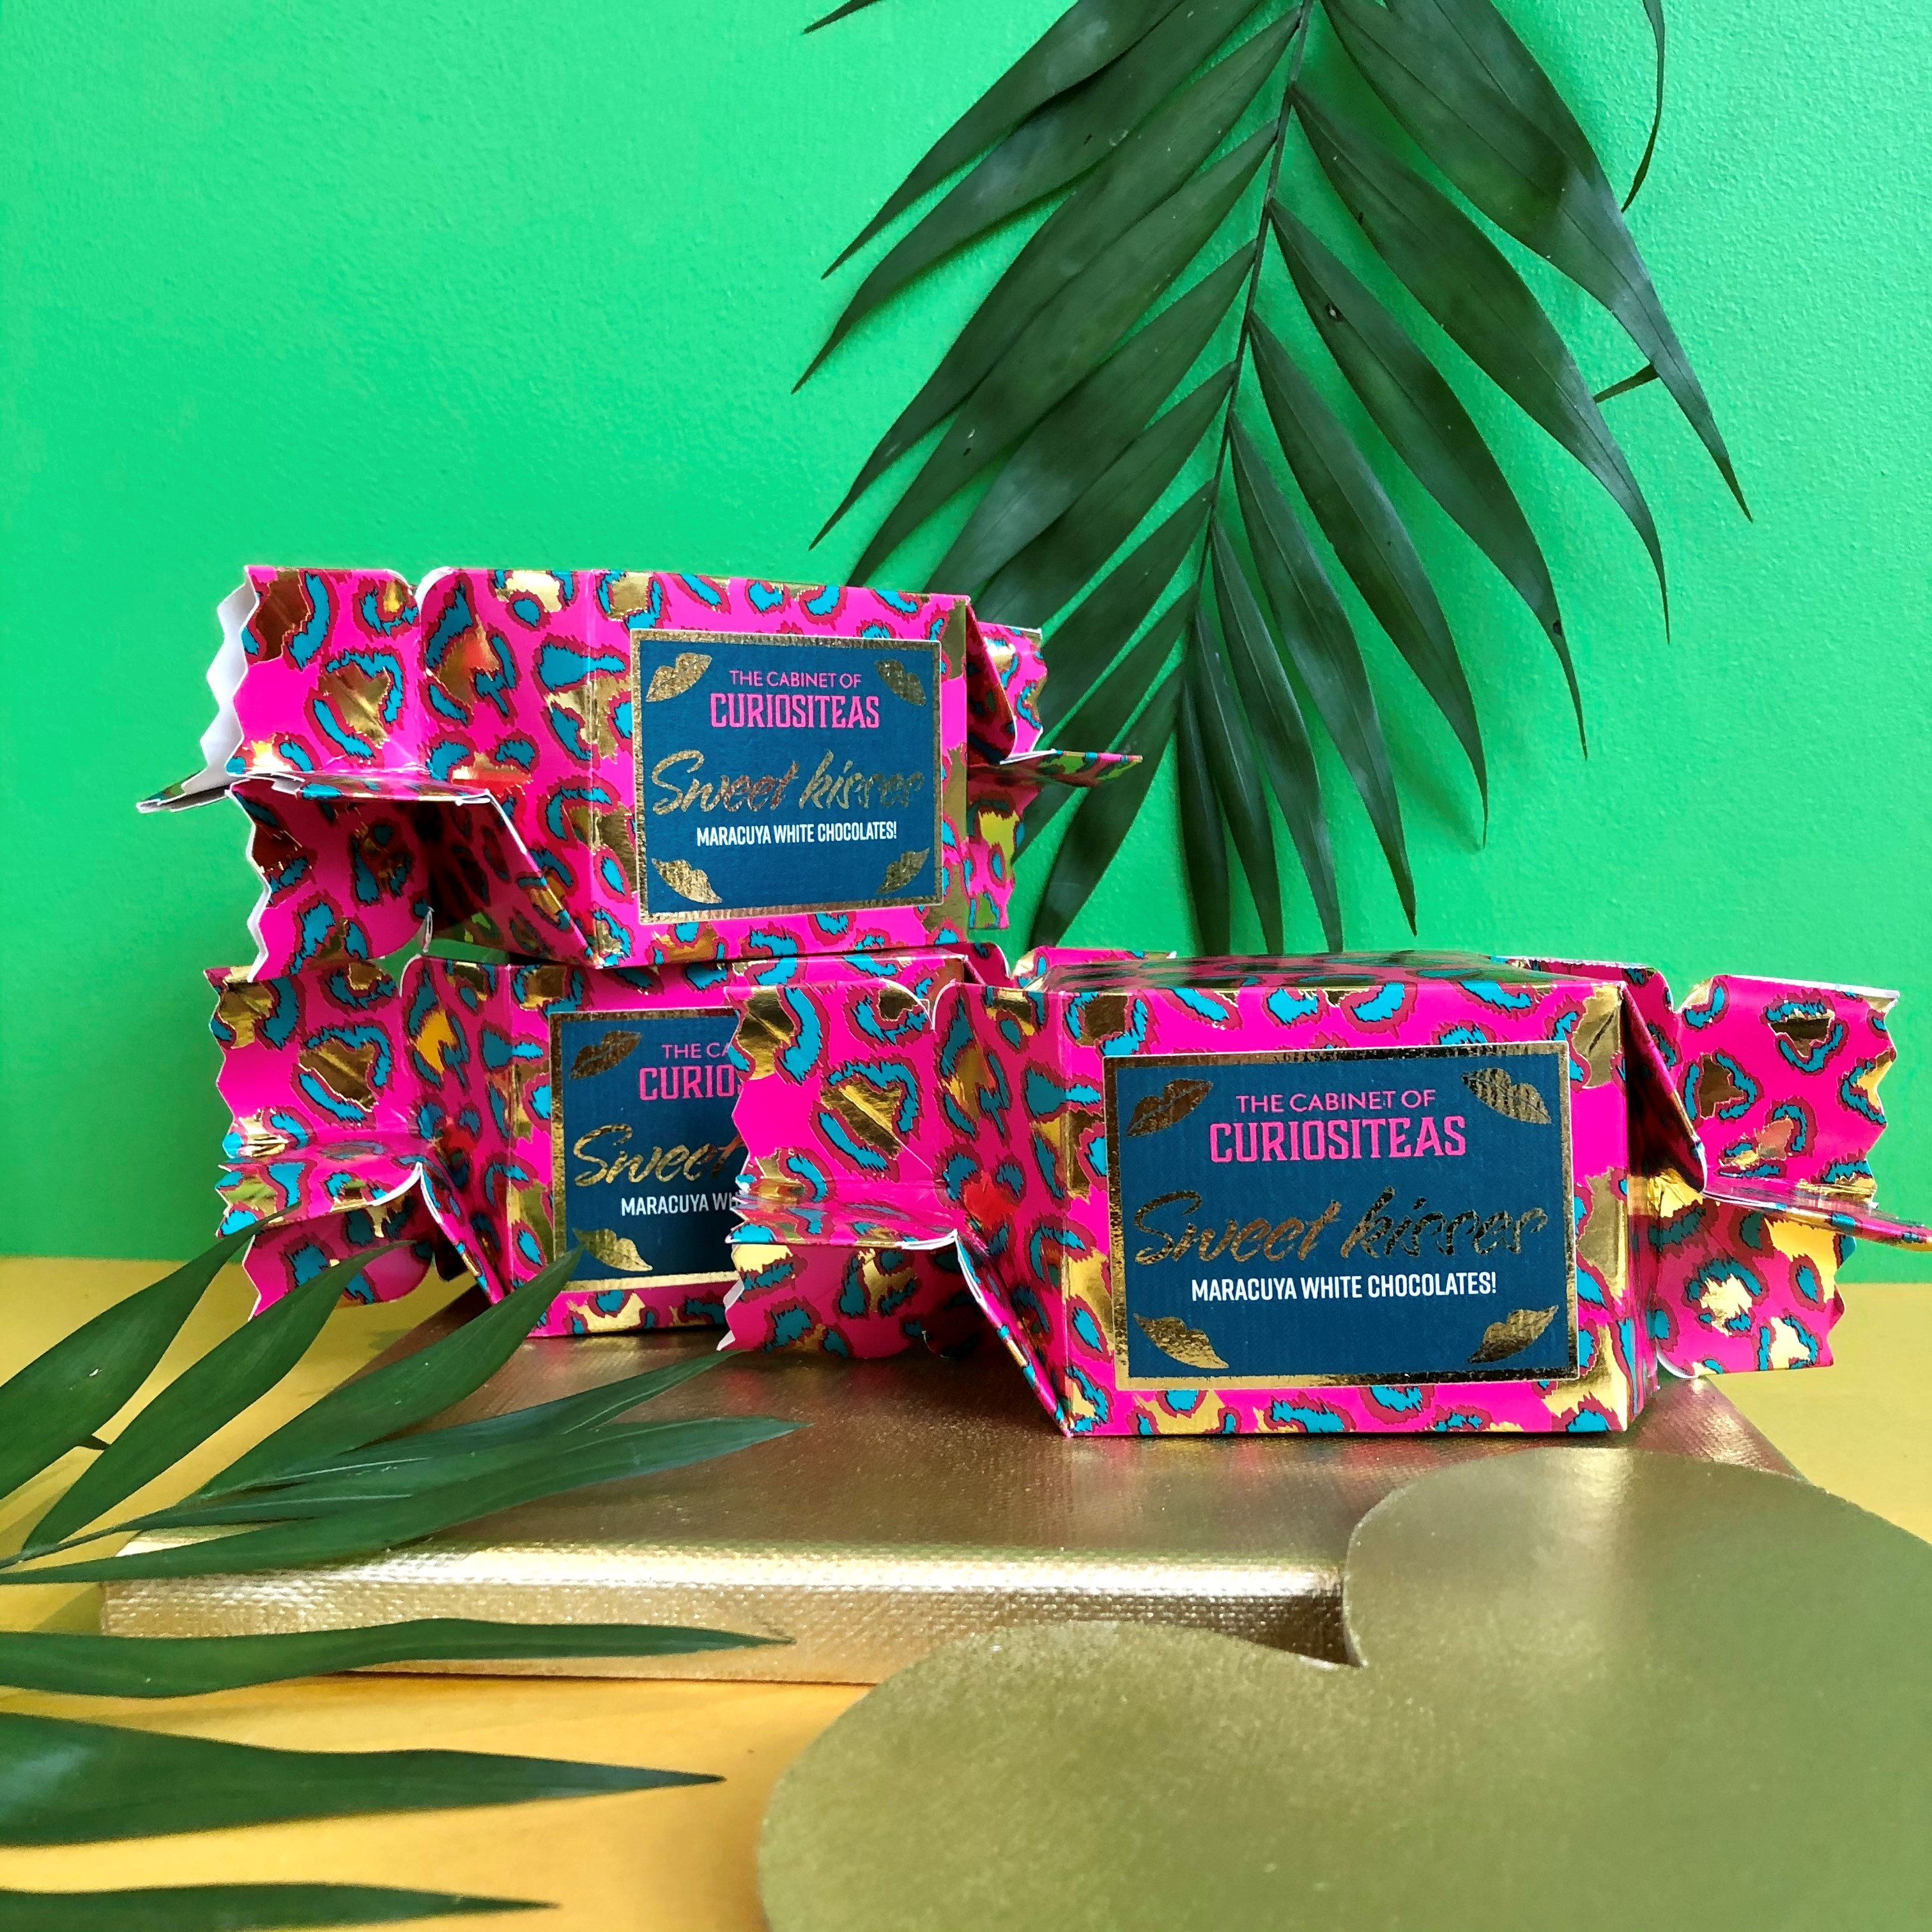 Bisous, Bisous! Candy Wrap Pink chocolade